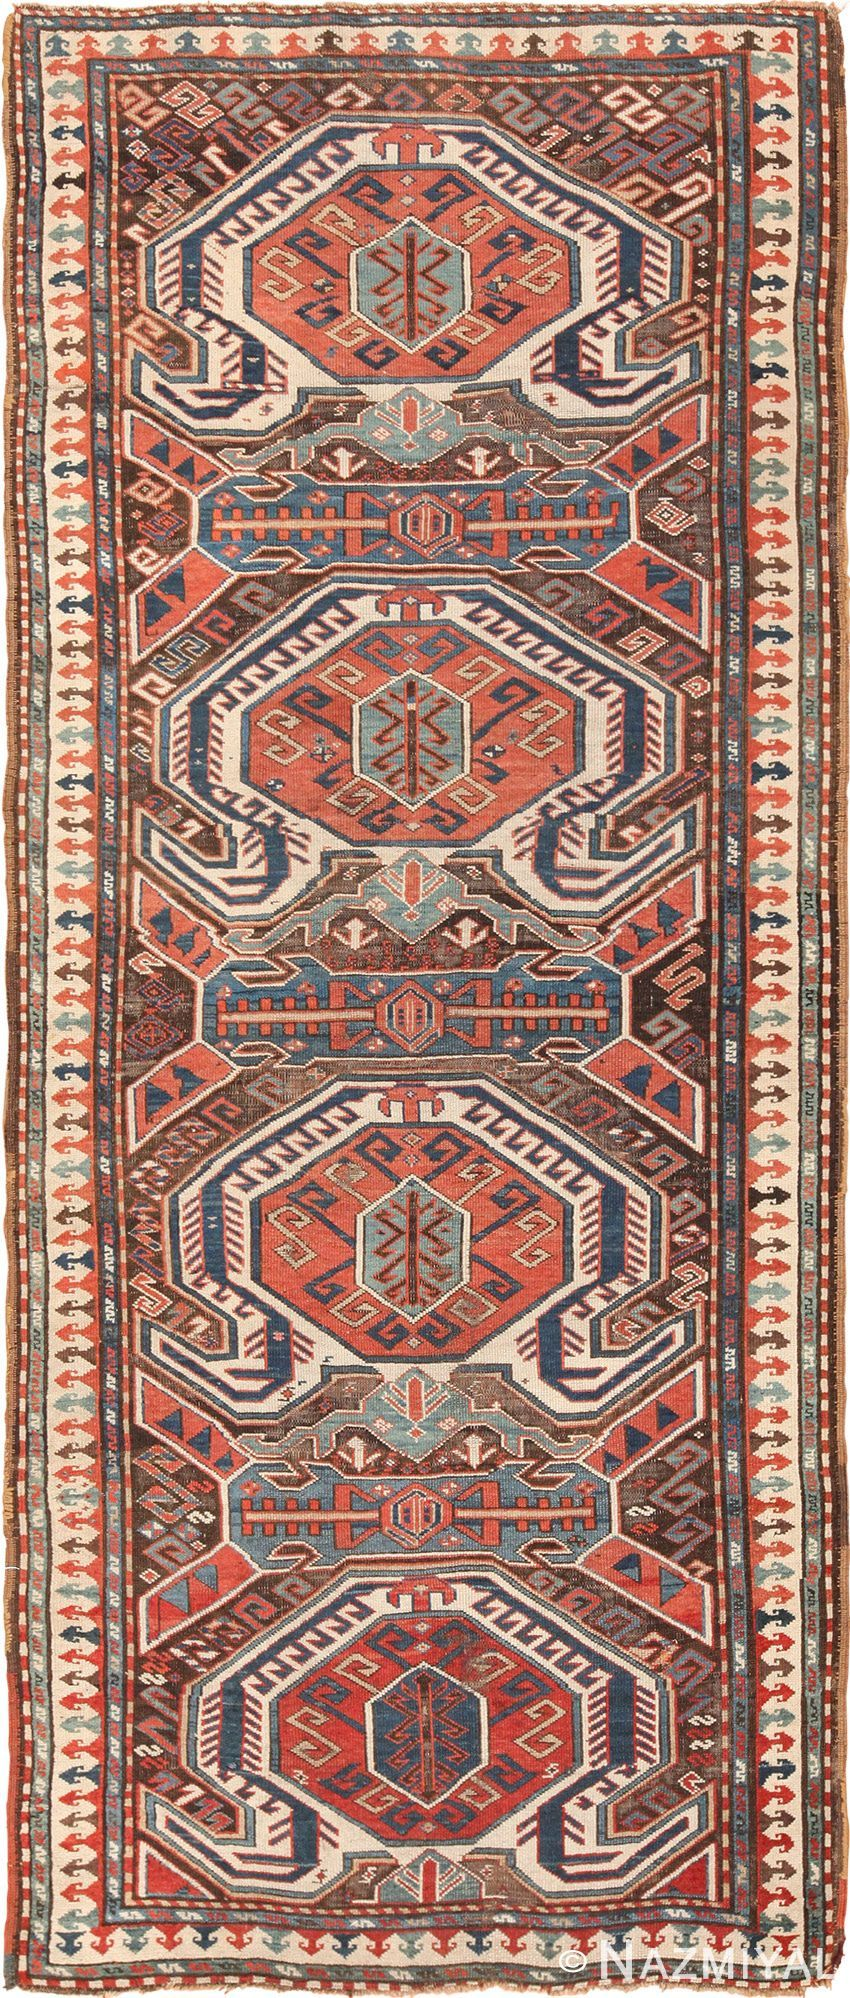 View This Beautiful Tribal Long And Narrow Antique Caucasian Turtle Kazak Rug 49644 Available For